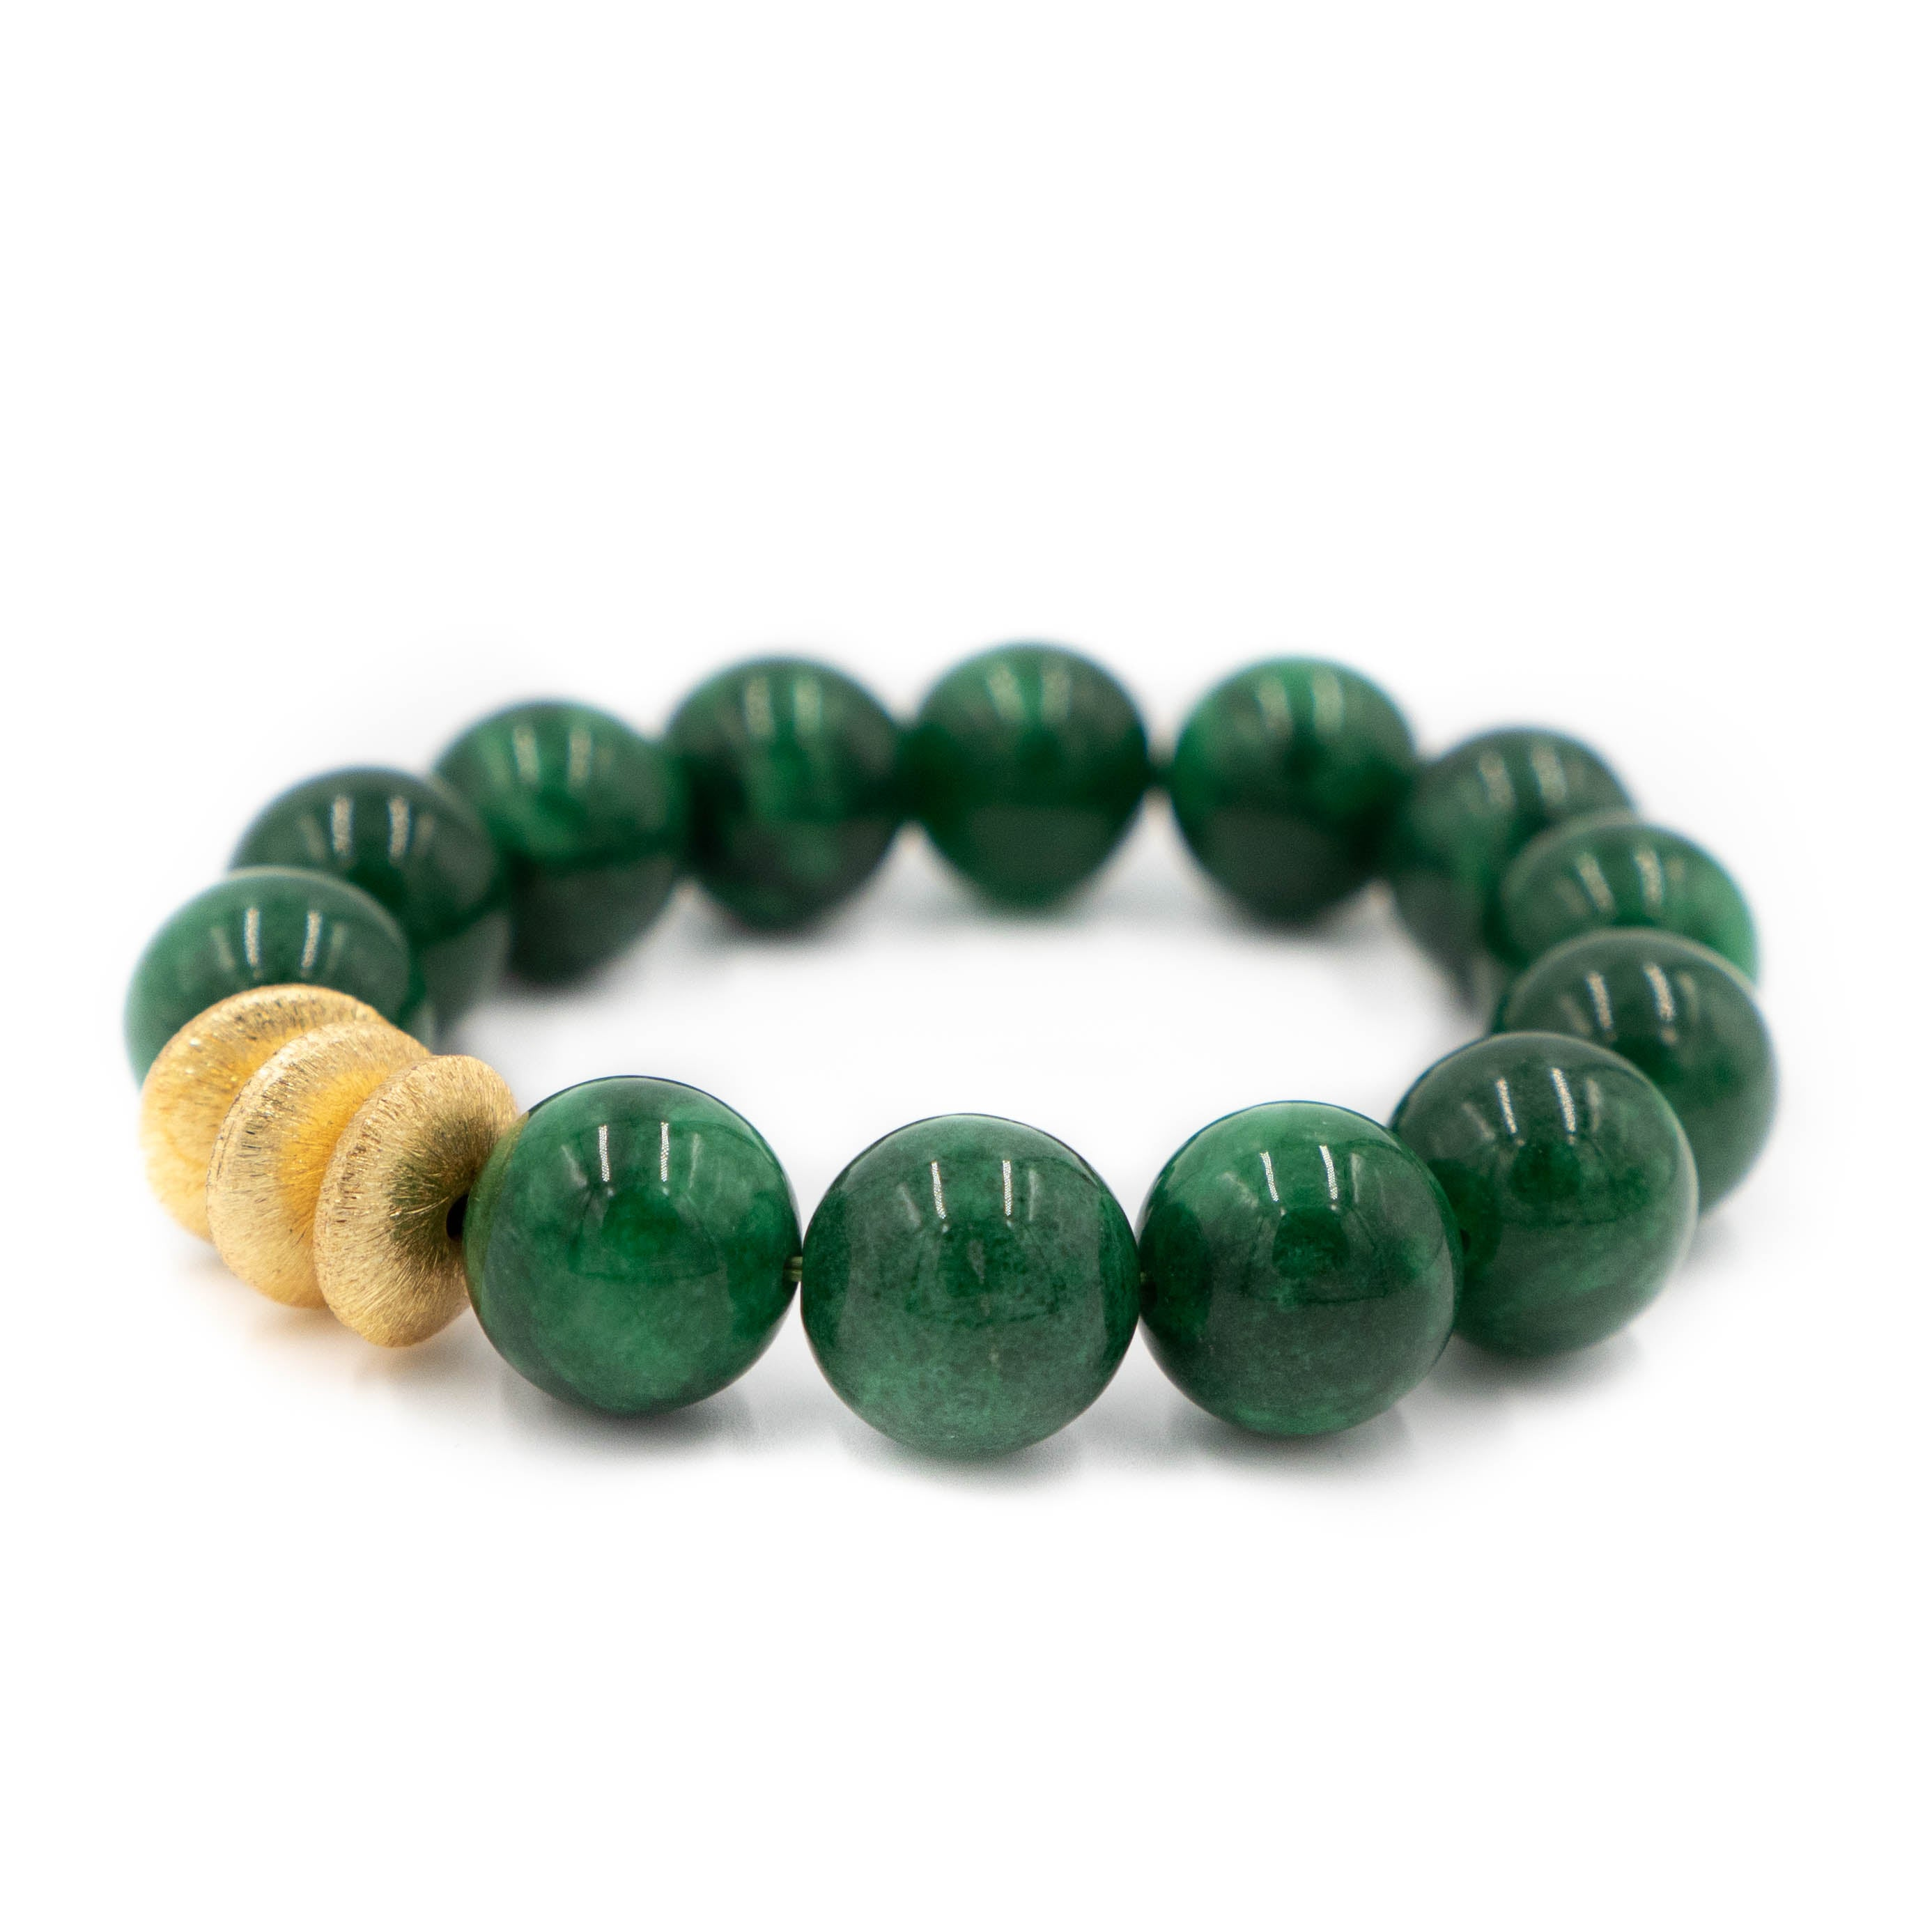 Sheldon Bracelet, Kelly Green Jade